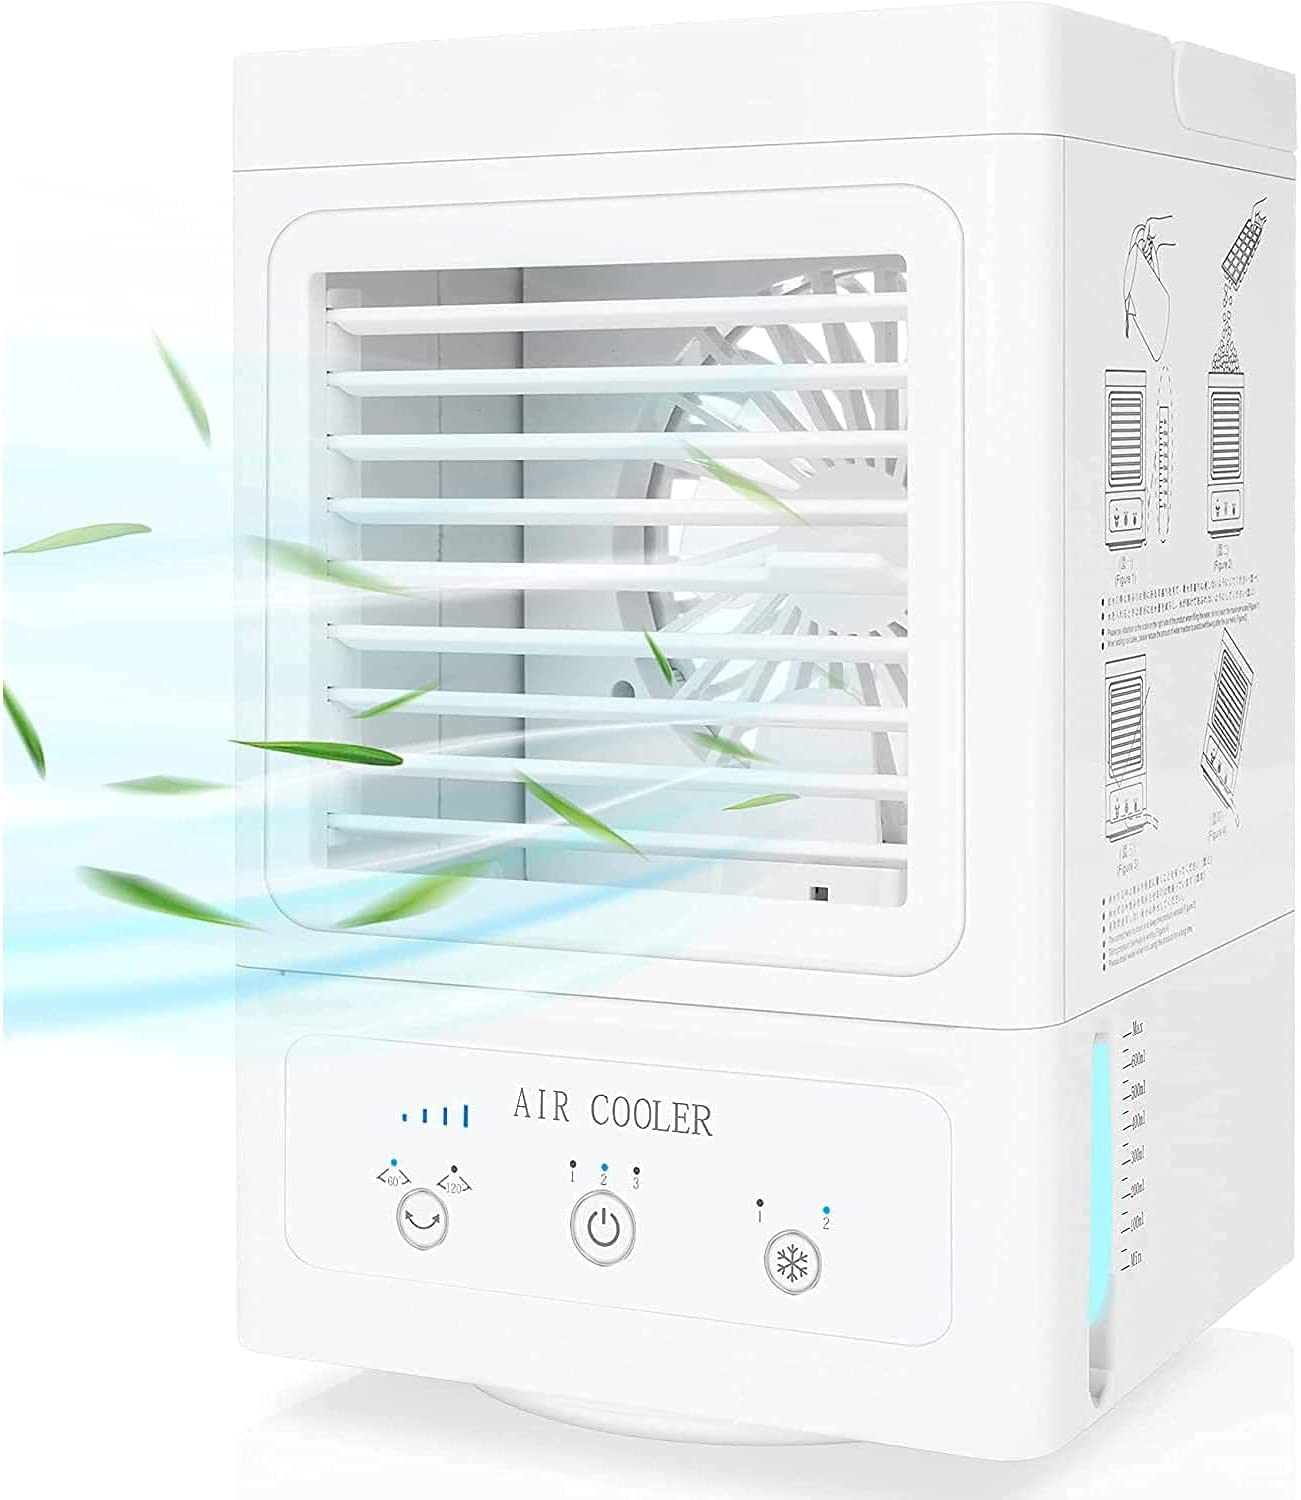 Portable Air Cooler Battery Operated Personal Air Conditioner for Bedroom Office Table Camping Outdoor-5000mAh Rechargeable Battery Auto Oscillation 700ml Water Tank